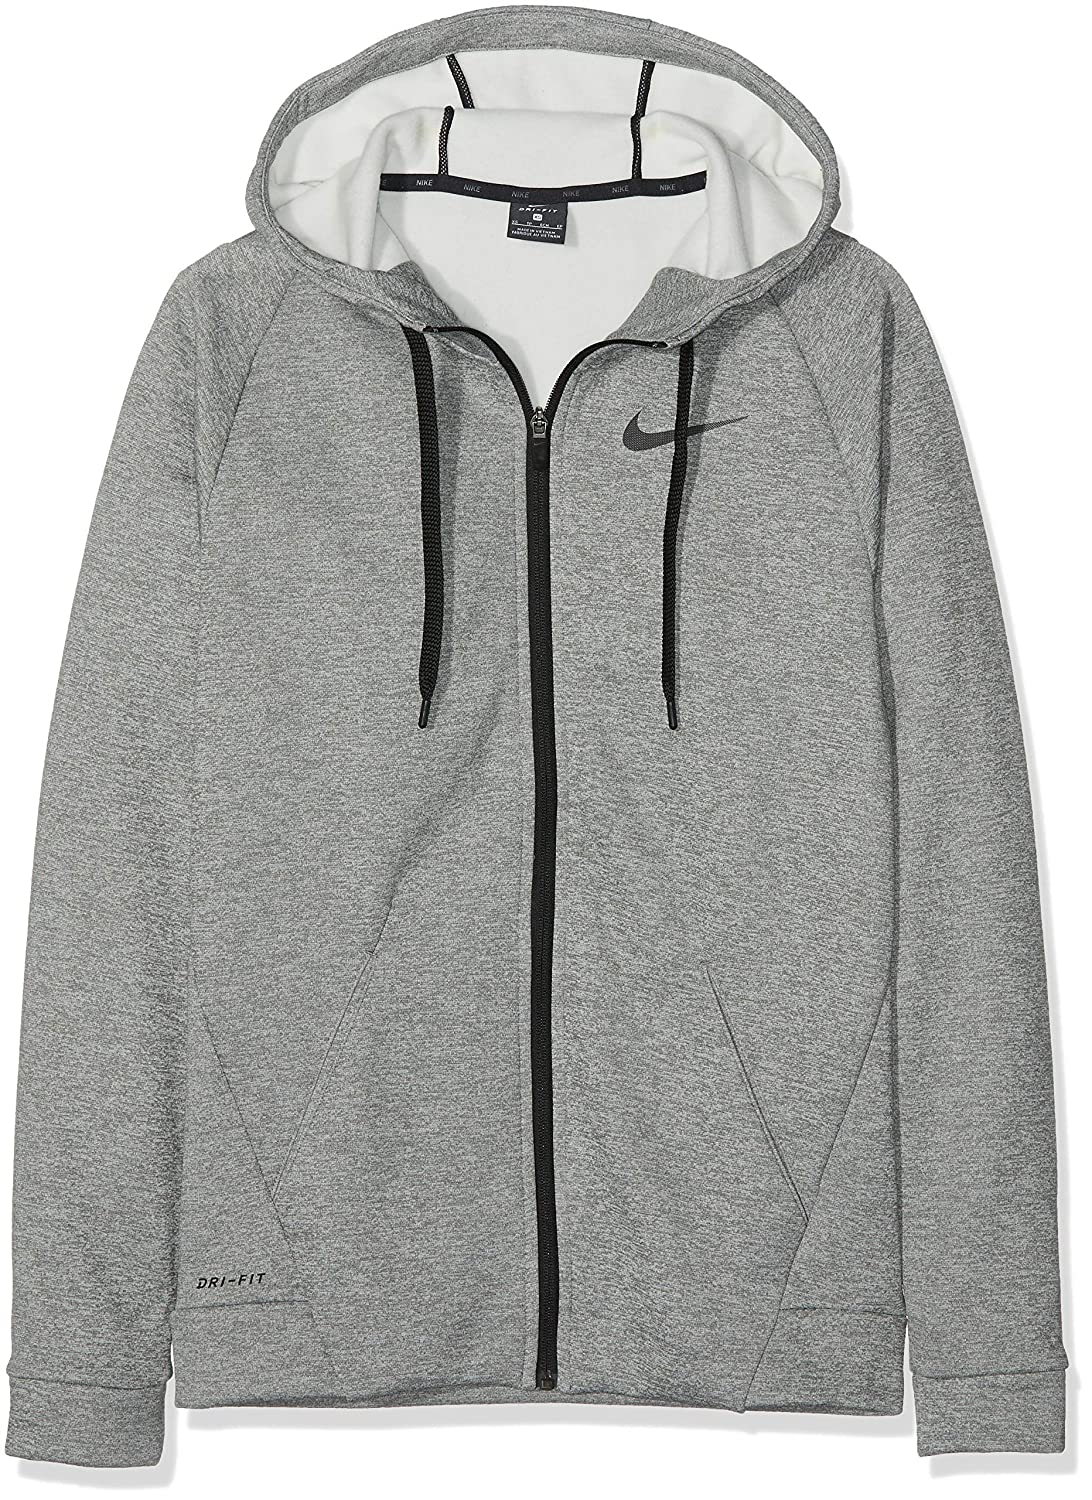 58b3bd2d Amazon.com: Nike Men's Therma Full Zip Training Hoodie: Clothing